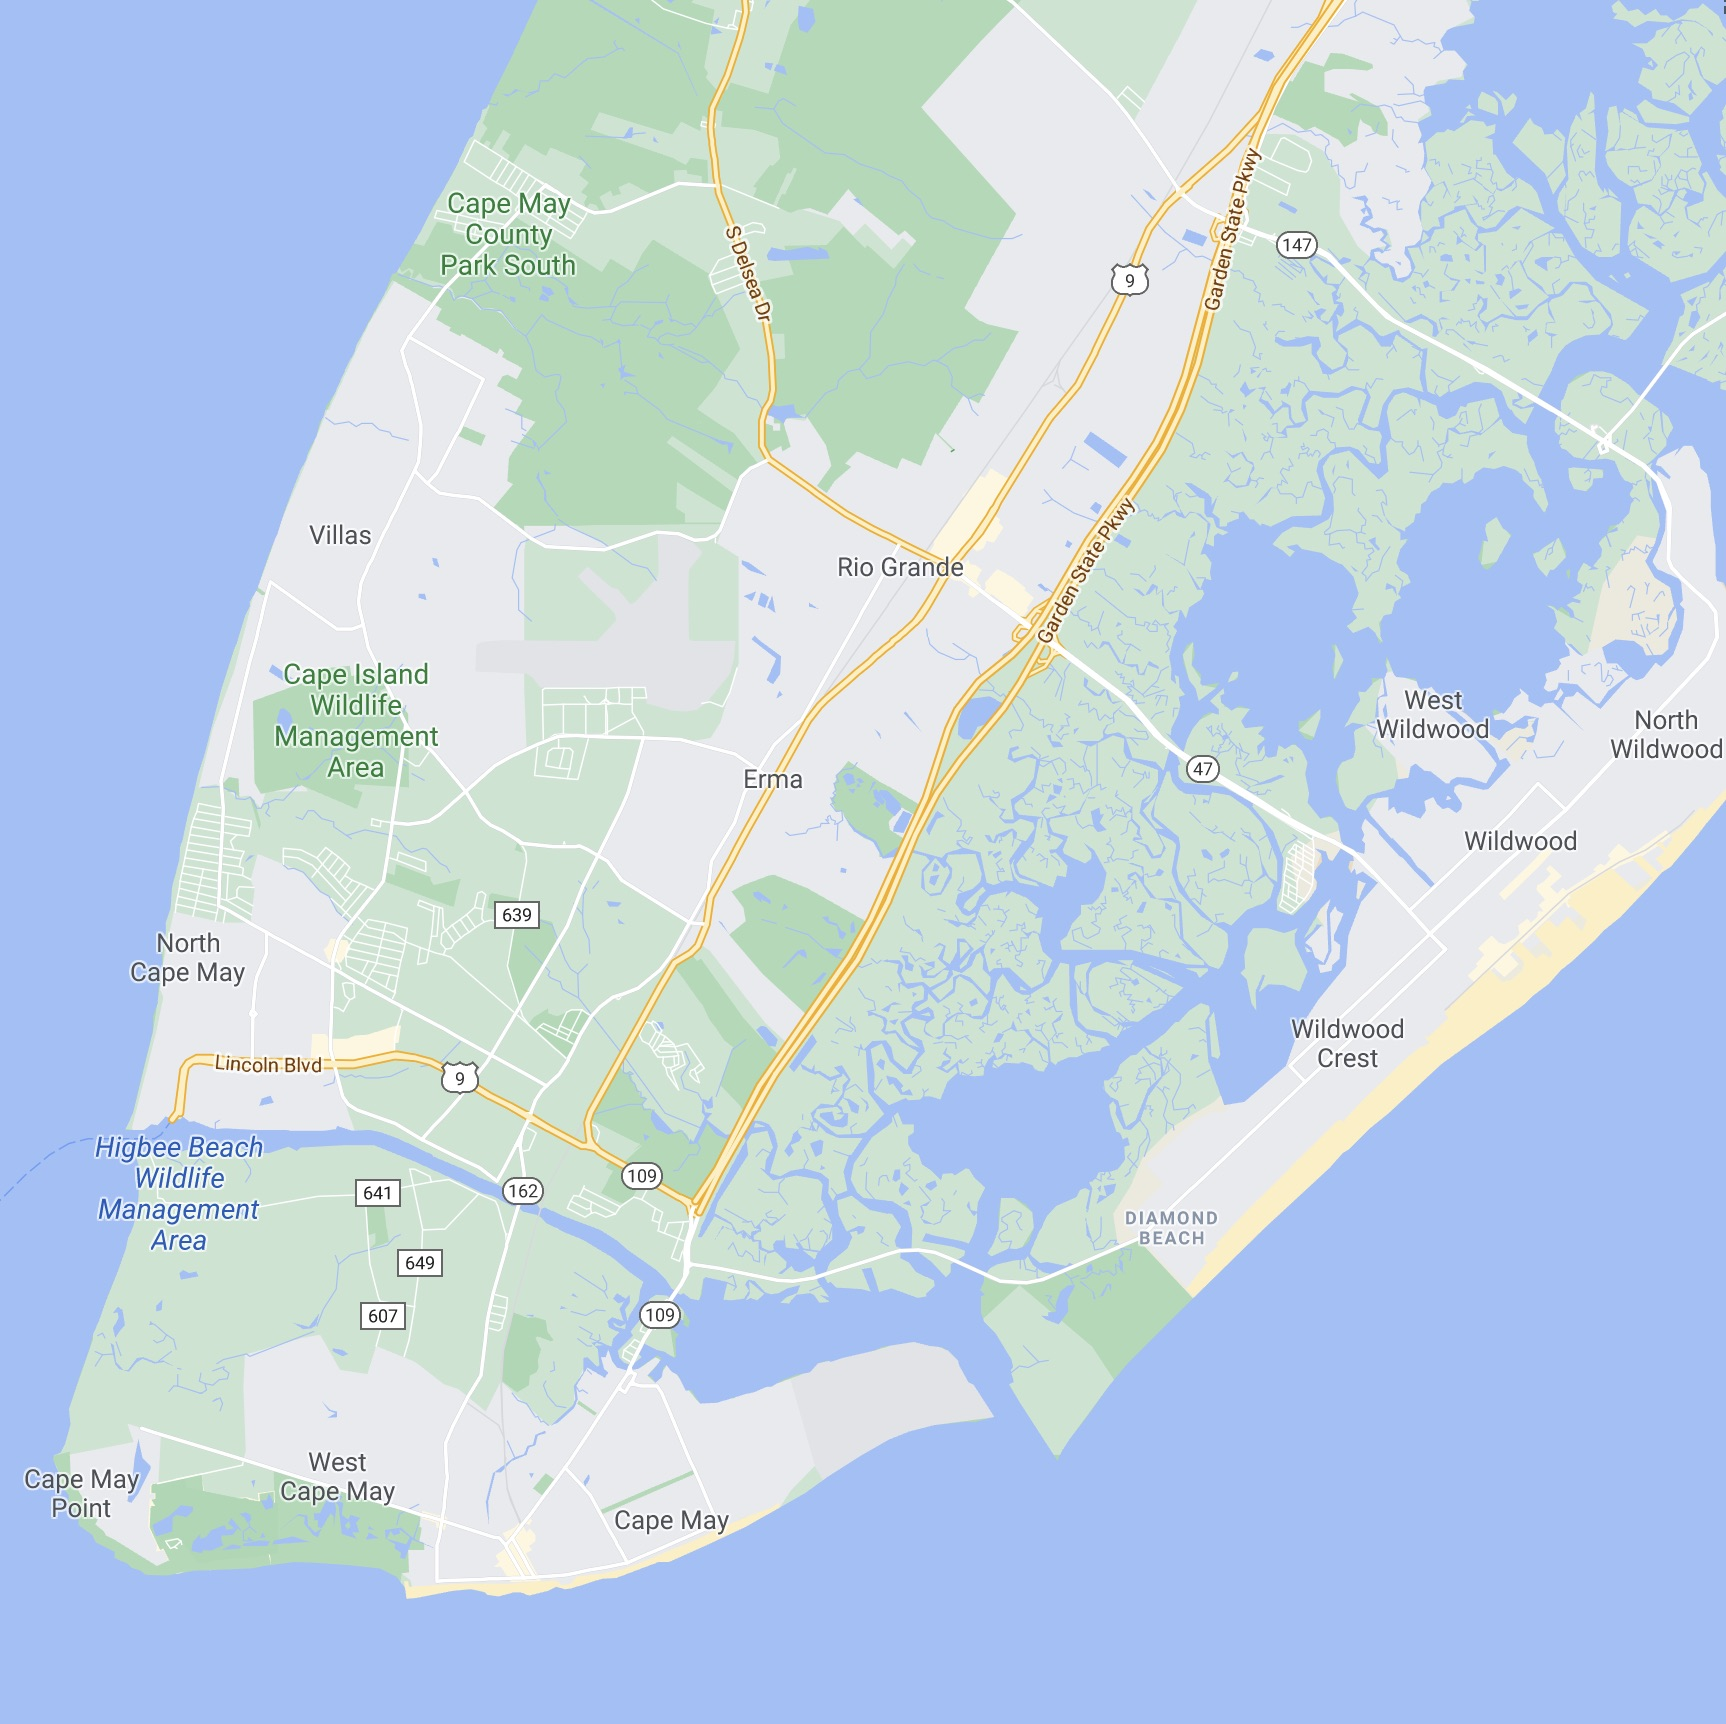 Map of the Cape May Peninsula